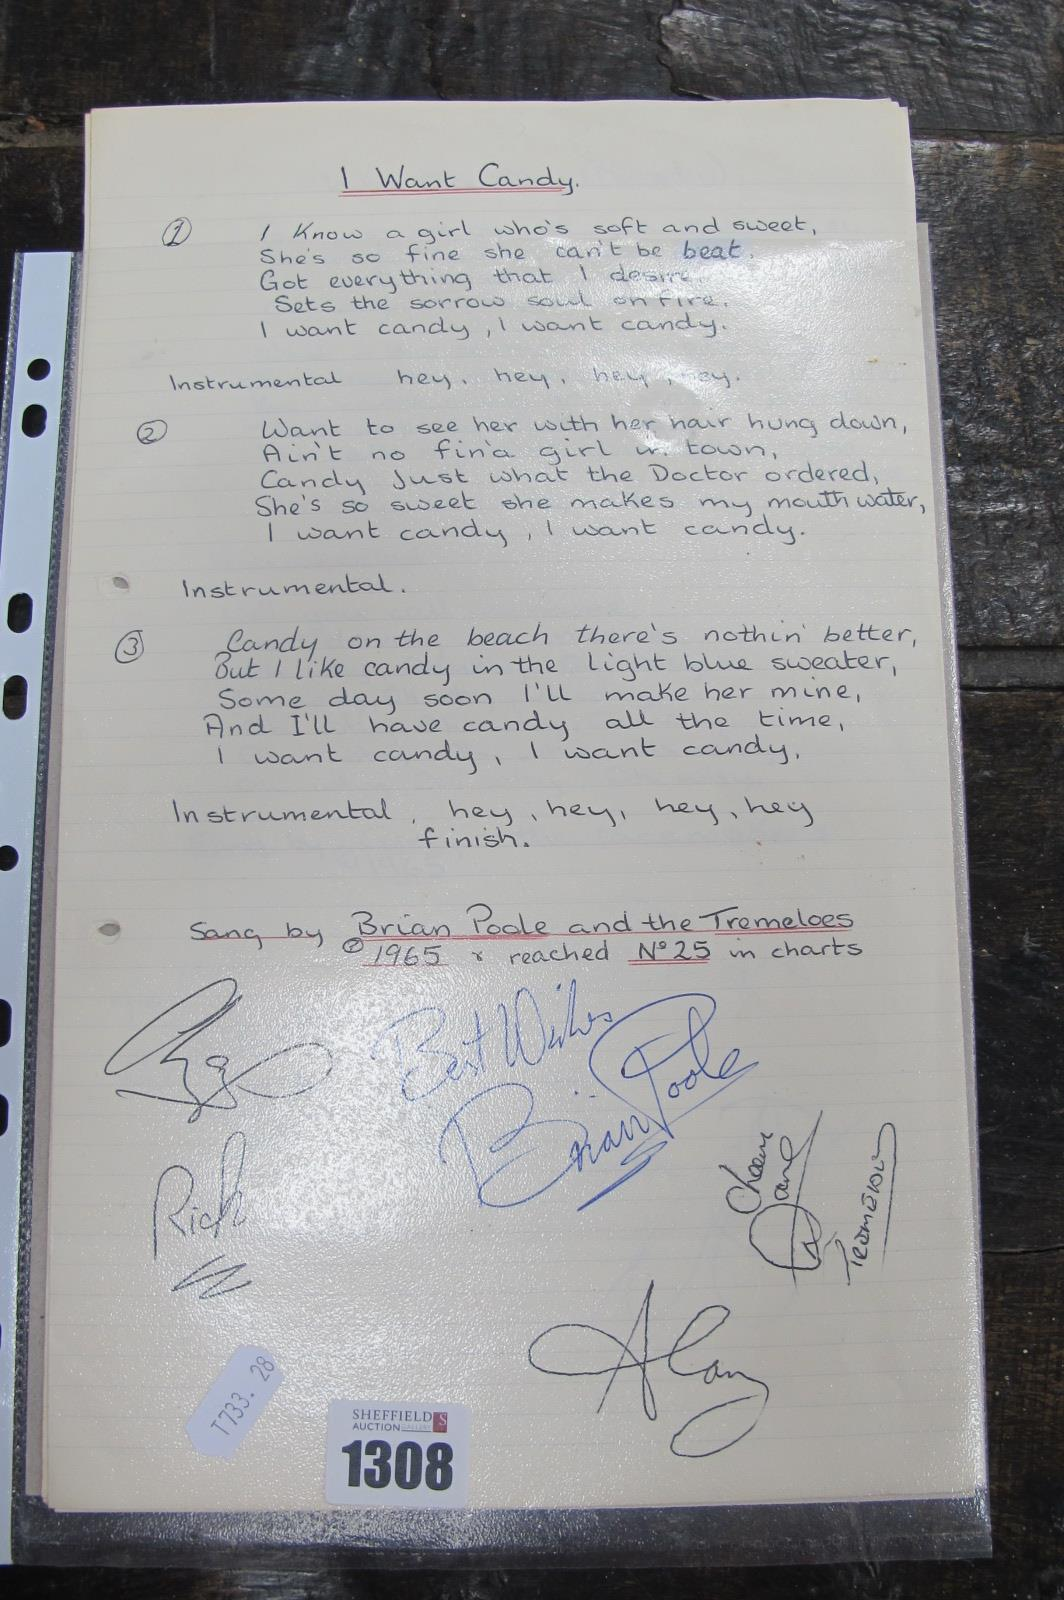 Pop Music - 1960's Autographs, Brian Poole and The Troggs; together with lyrics. Dave Berry, Freddie